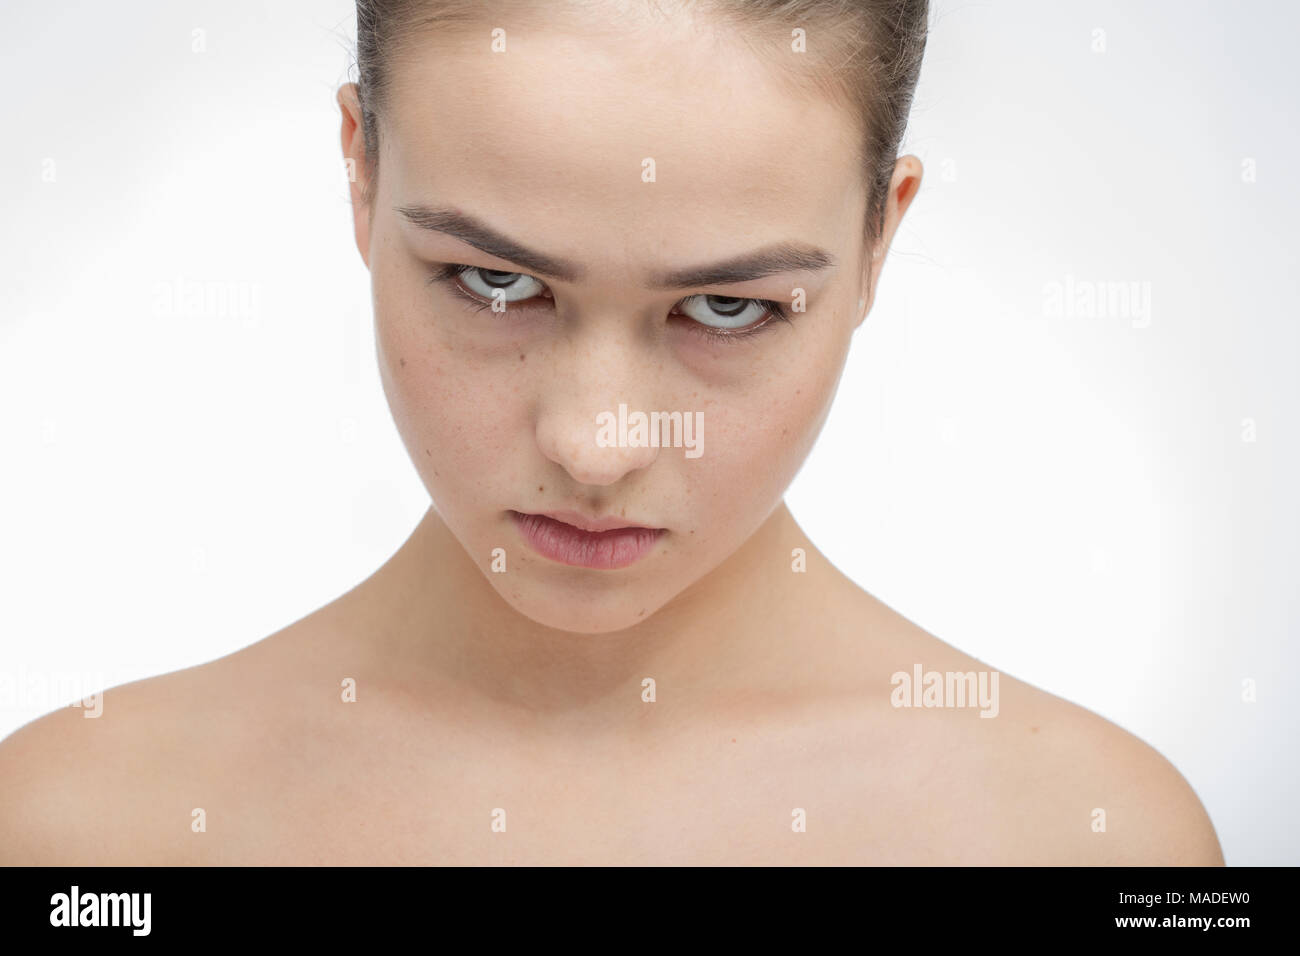 angry sullen girl on white background looking at camera - Stock Image